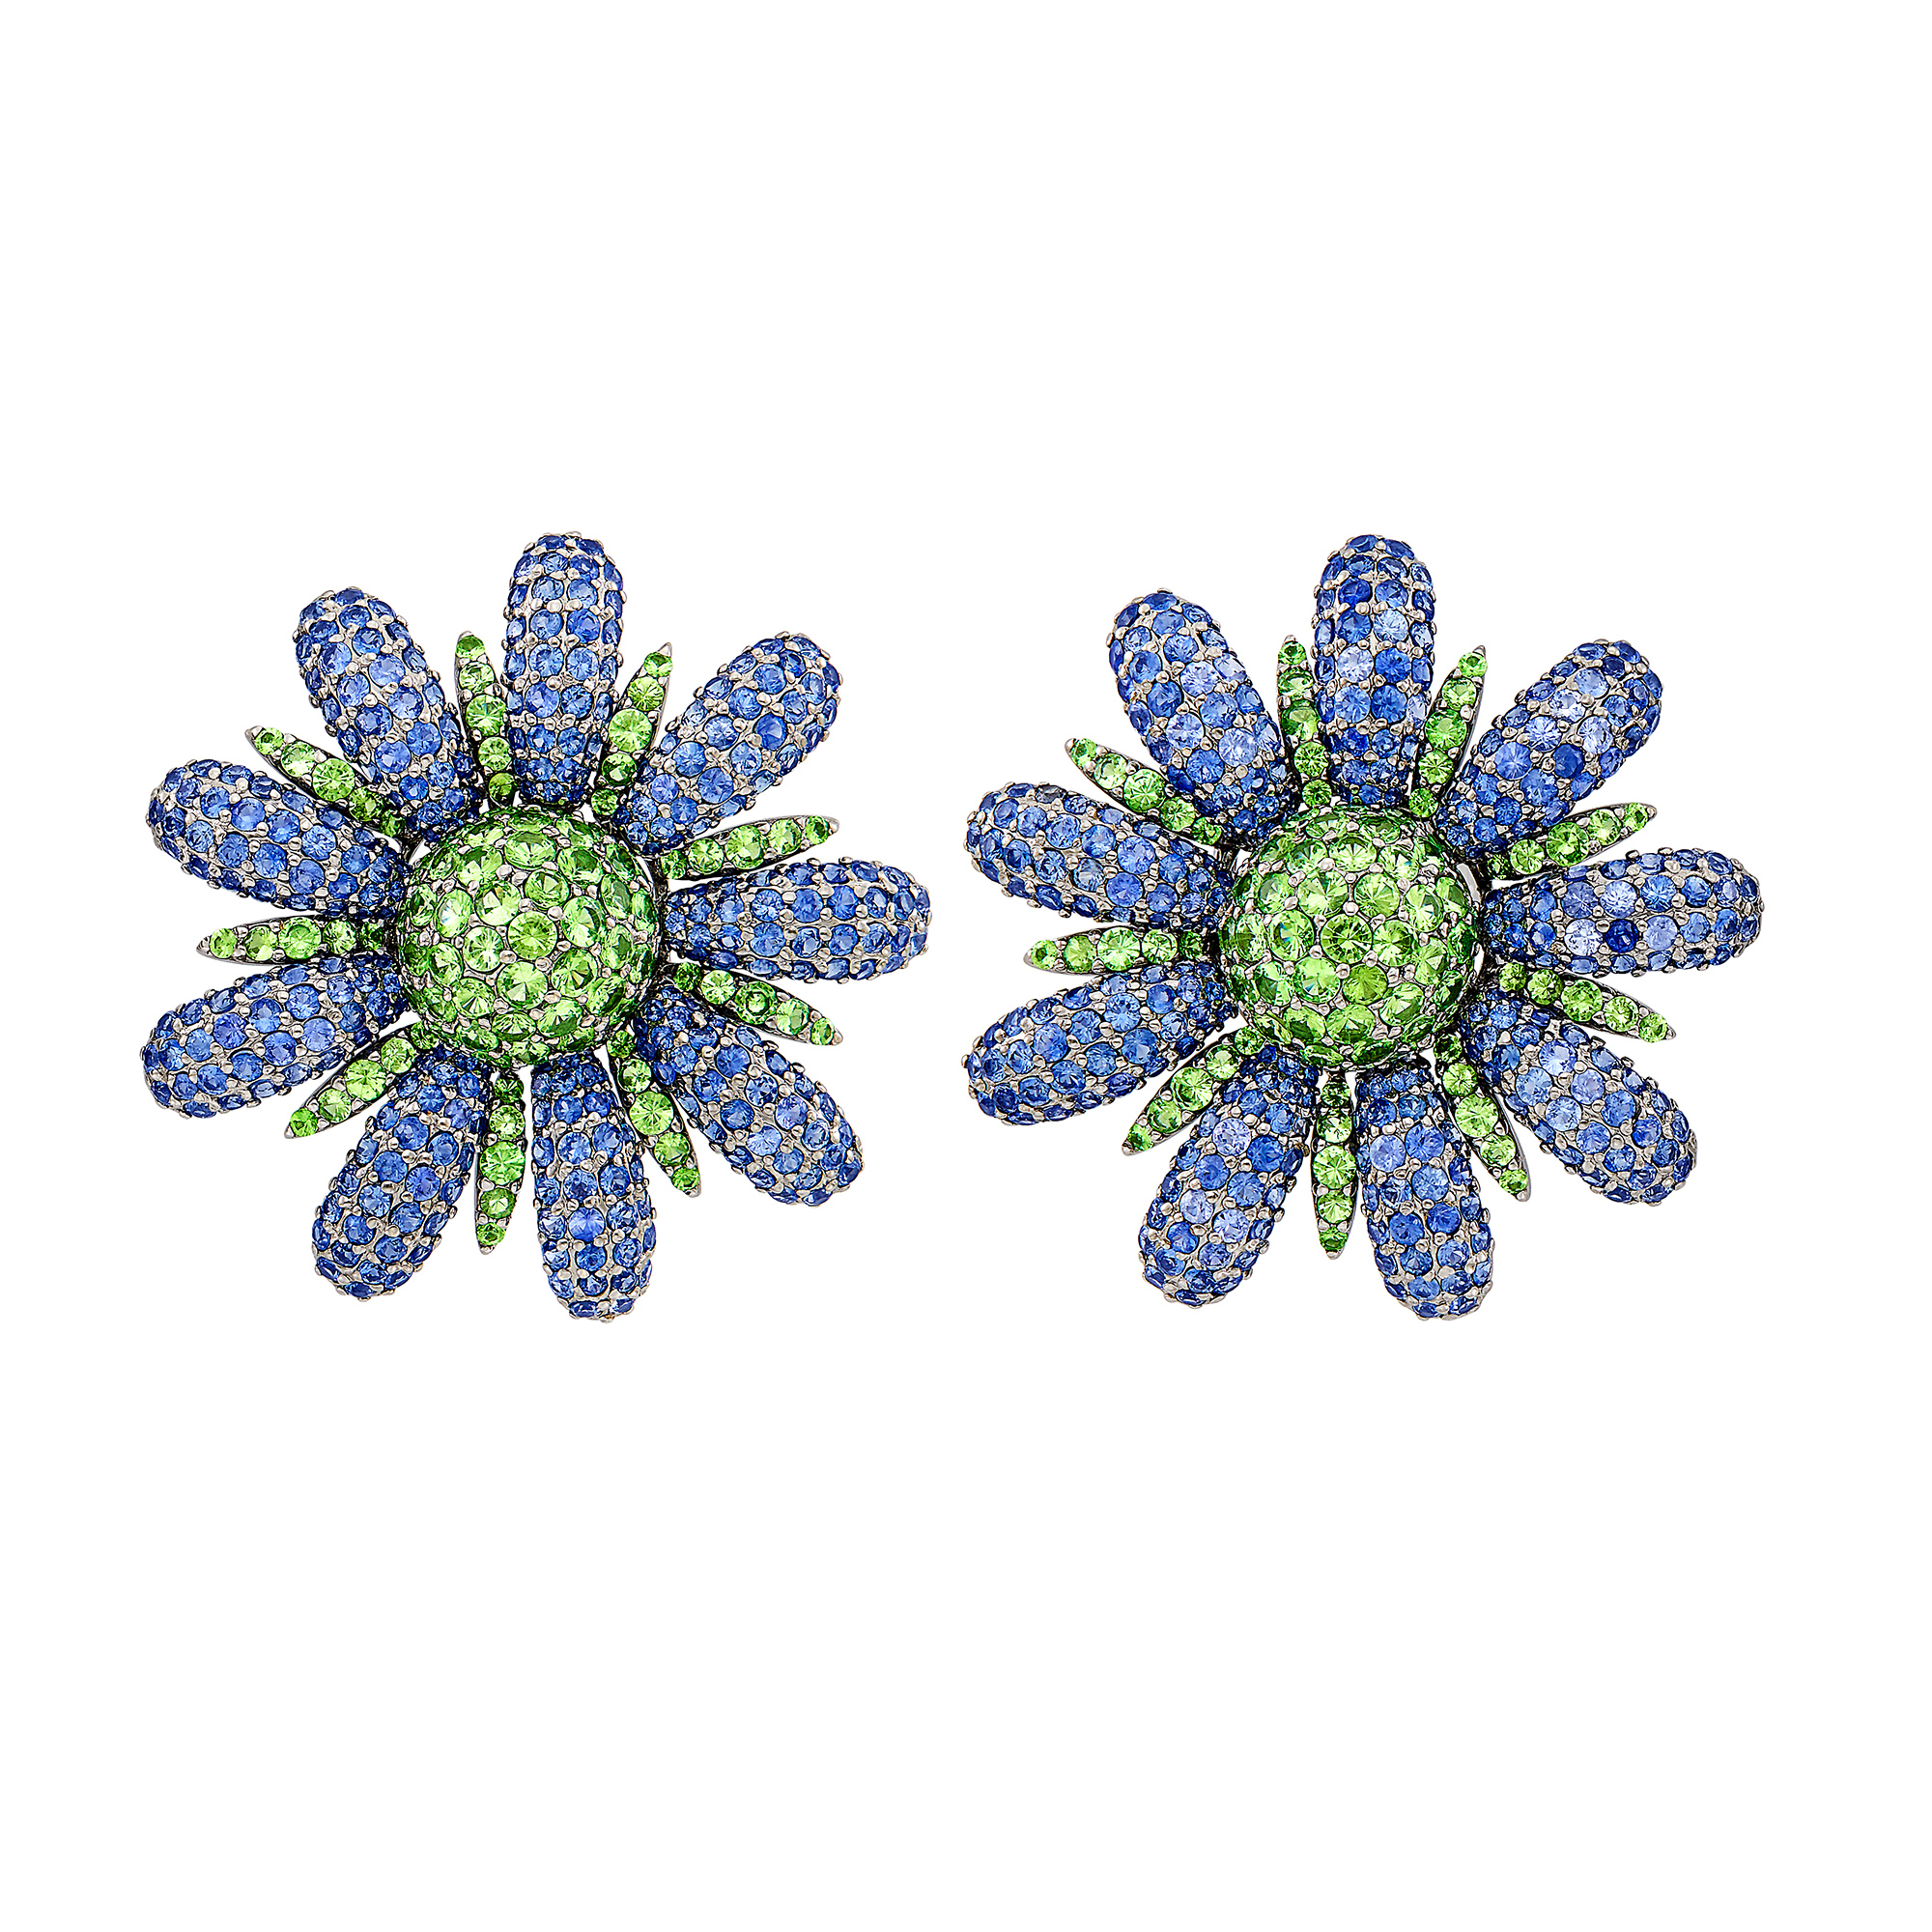 Lot image - Pair of Blackened Gold, Green Garnet and Sapphire Flower Earclips